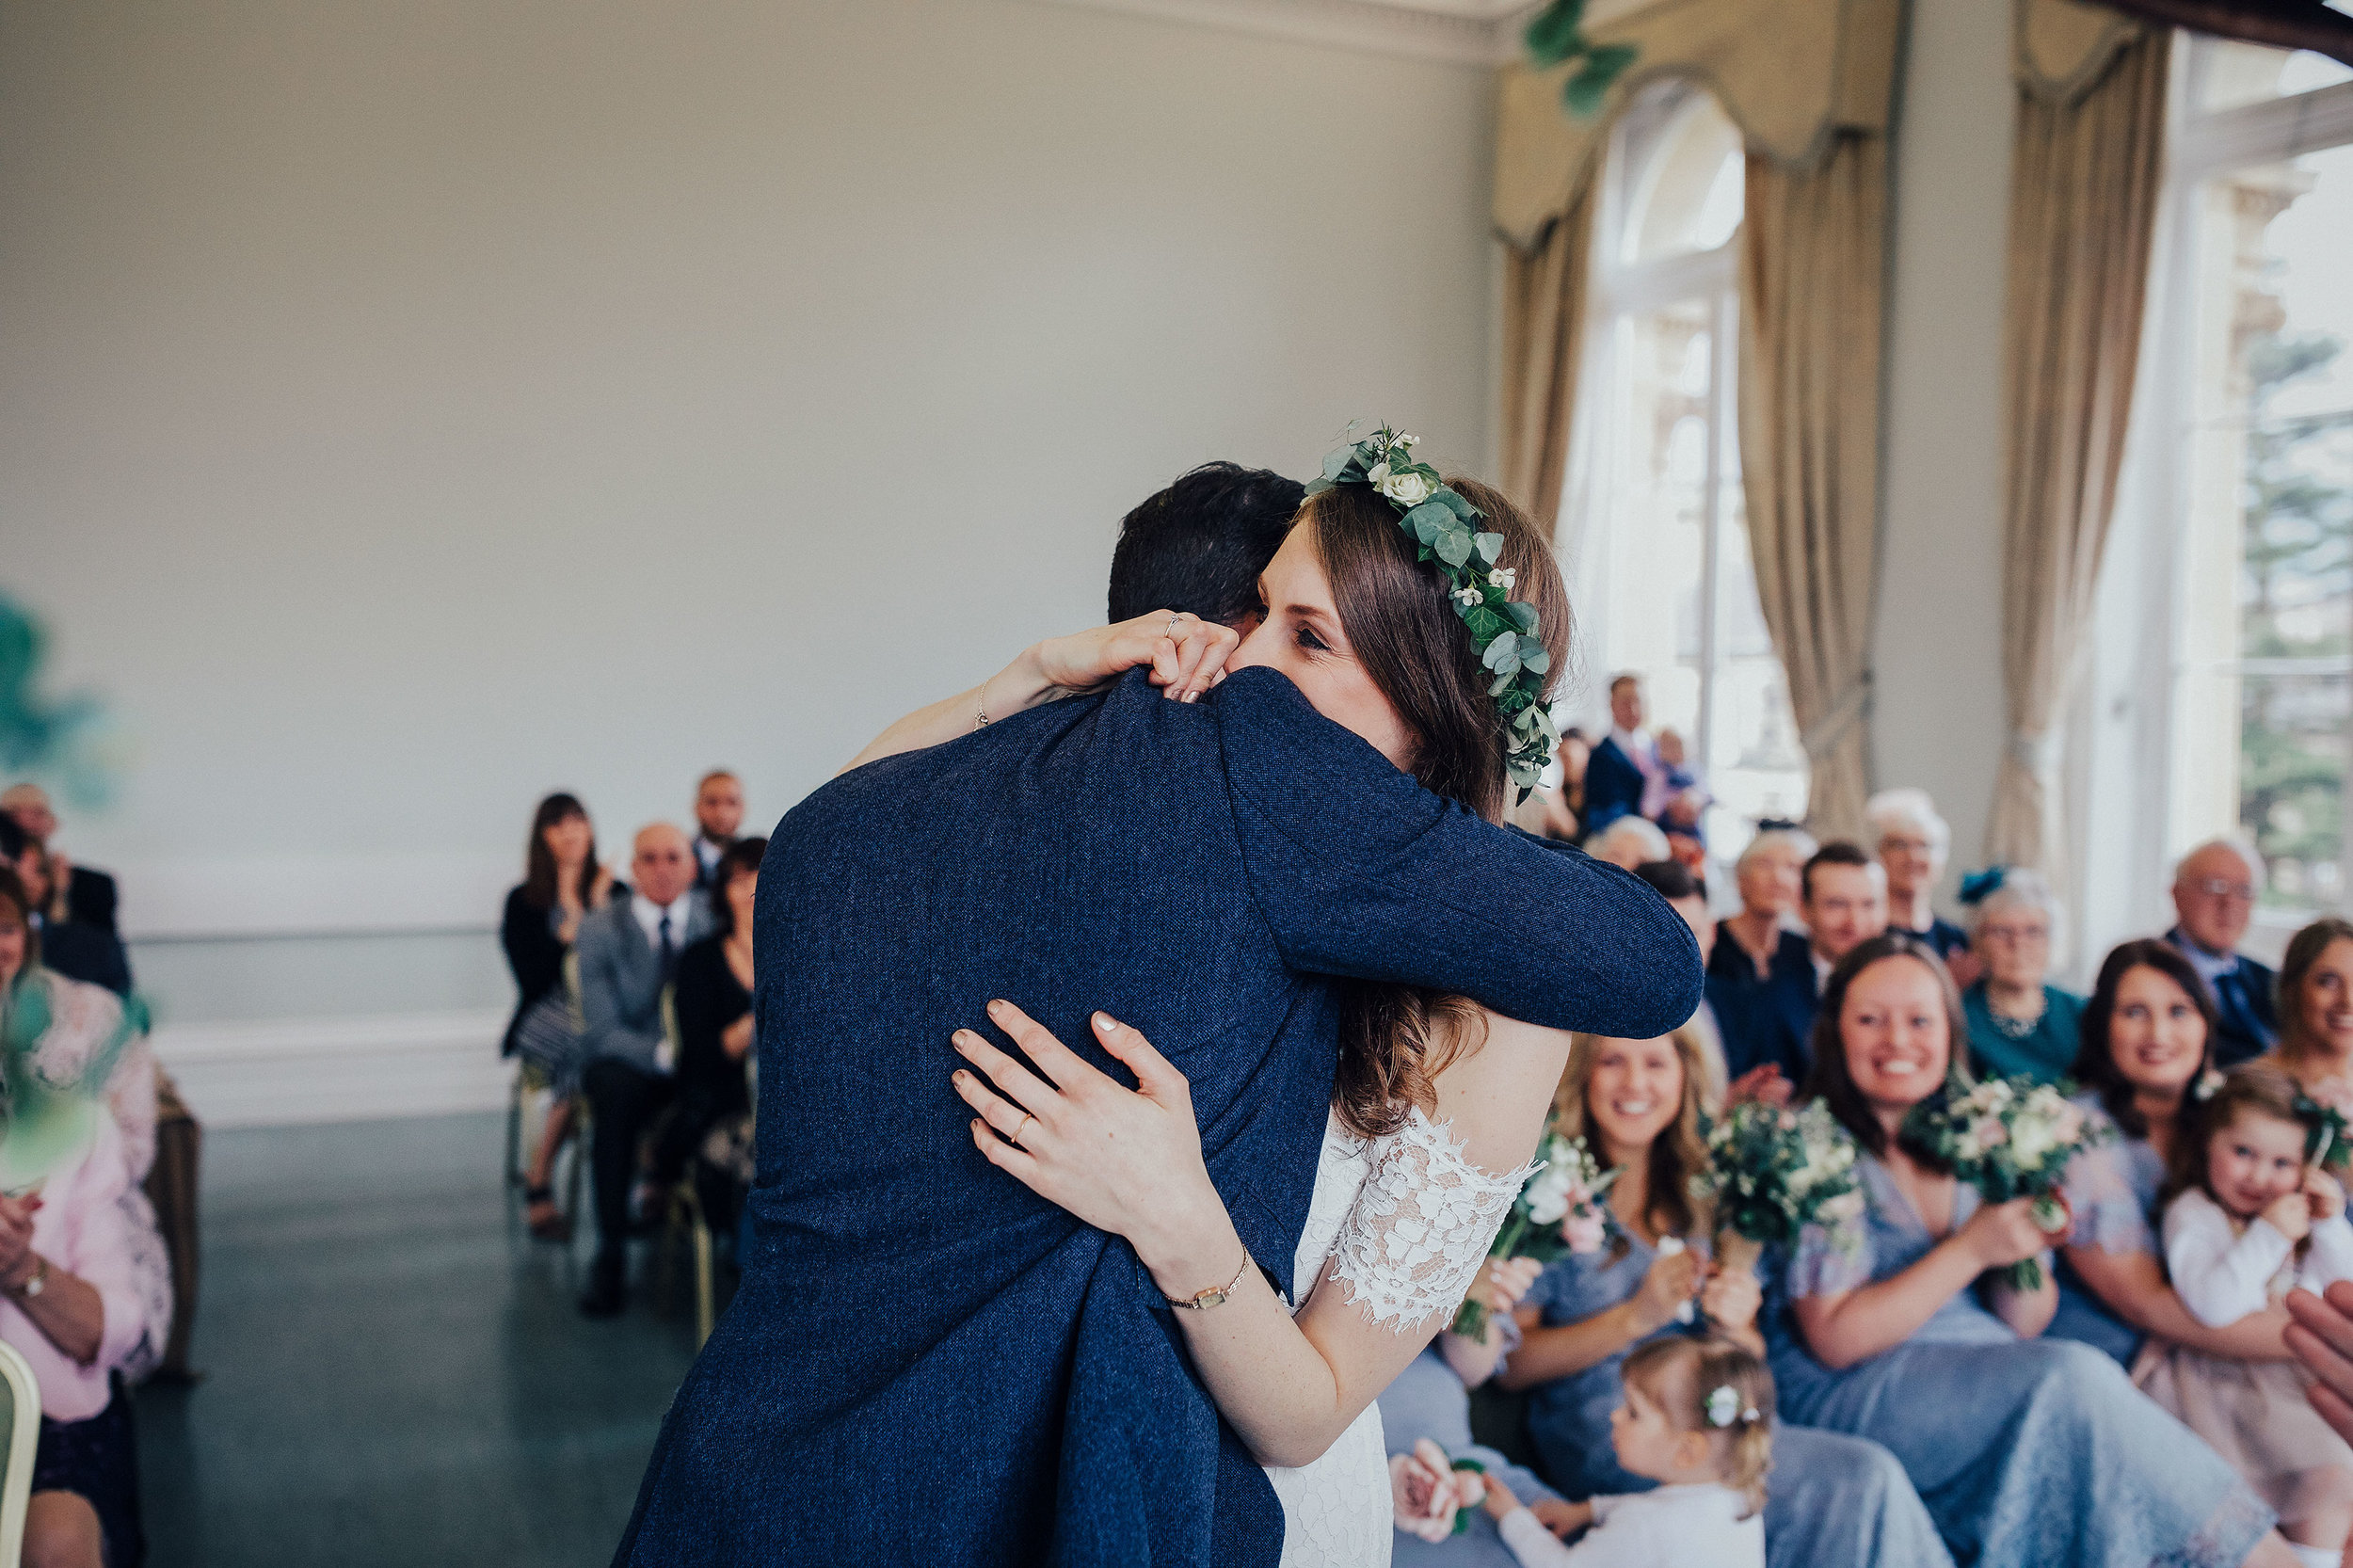 PJ_PHILLIPS_PHOTOGRAPHY_2018_SCOTLAND_WEDDING_PHOTOOGRAPHER_366.jpg